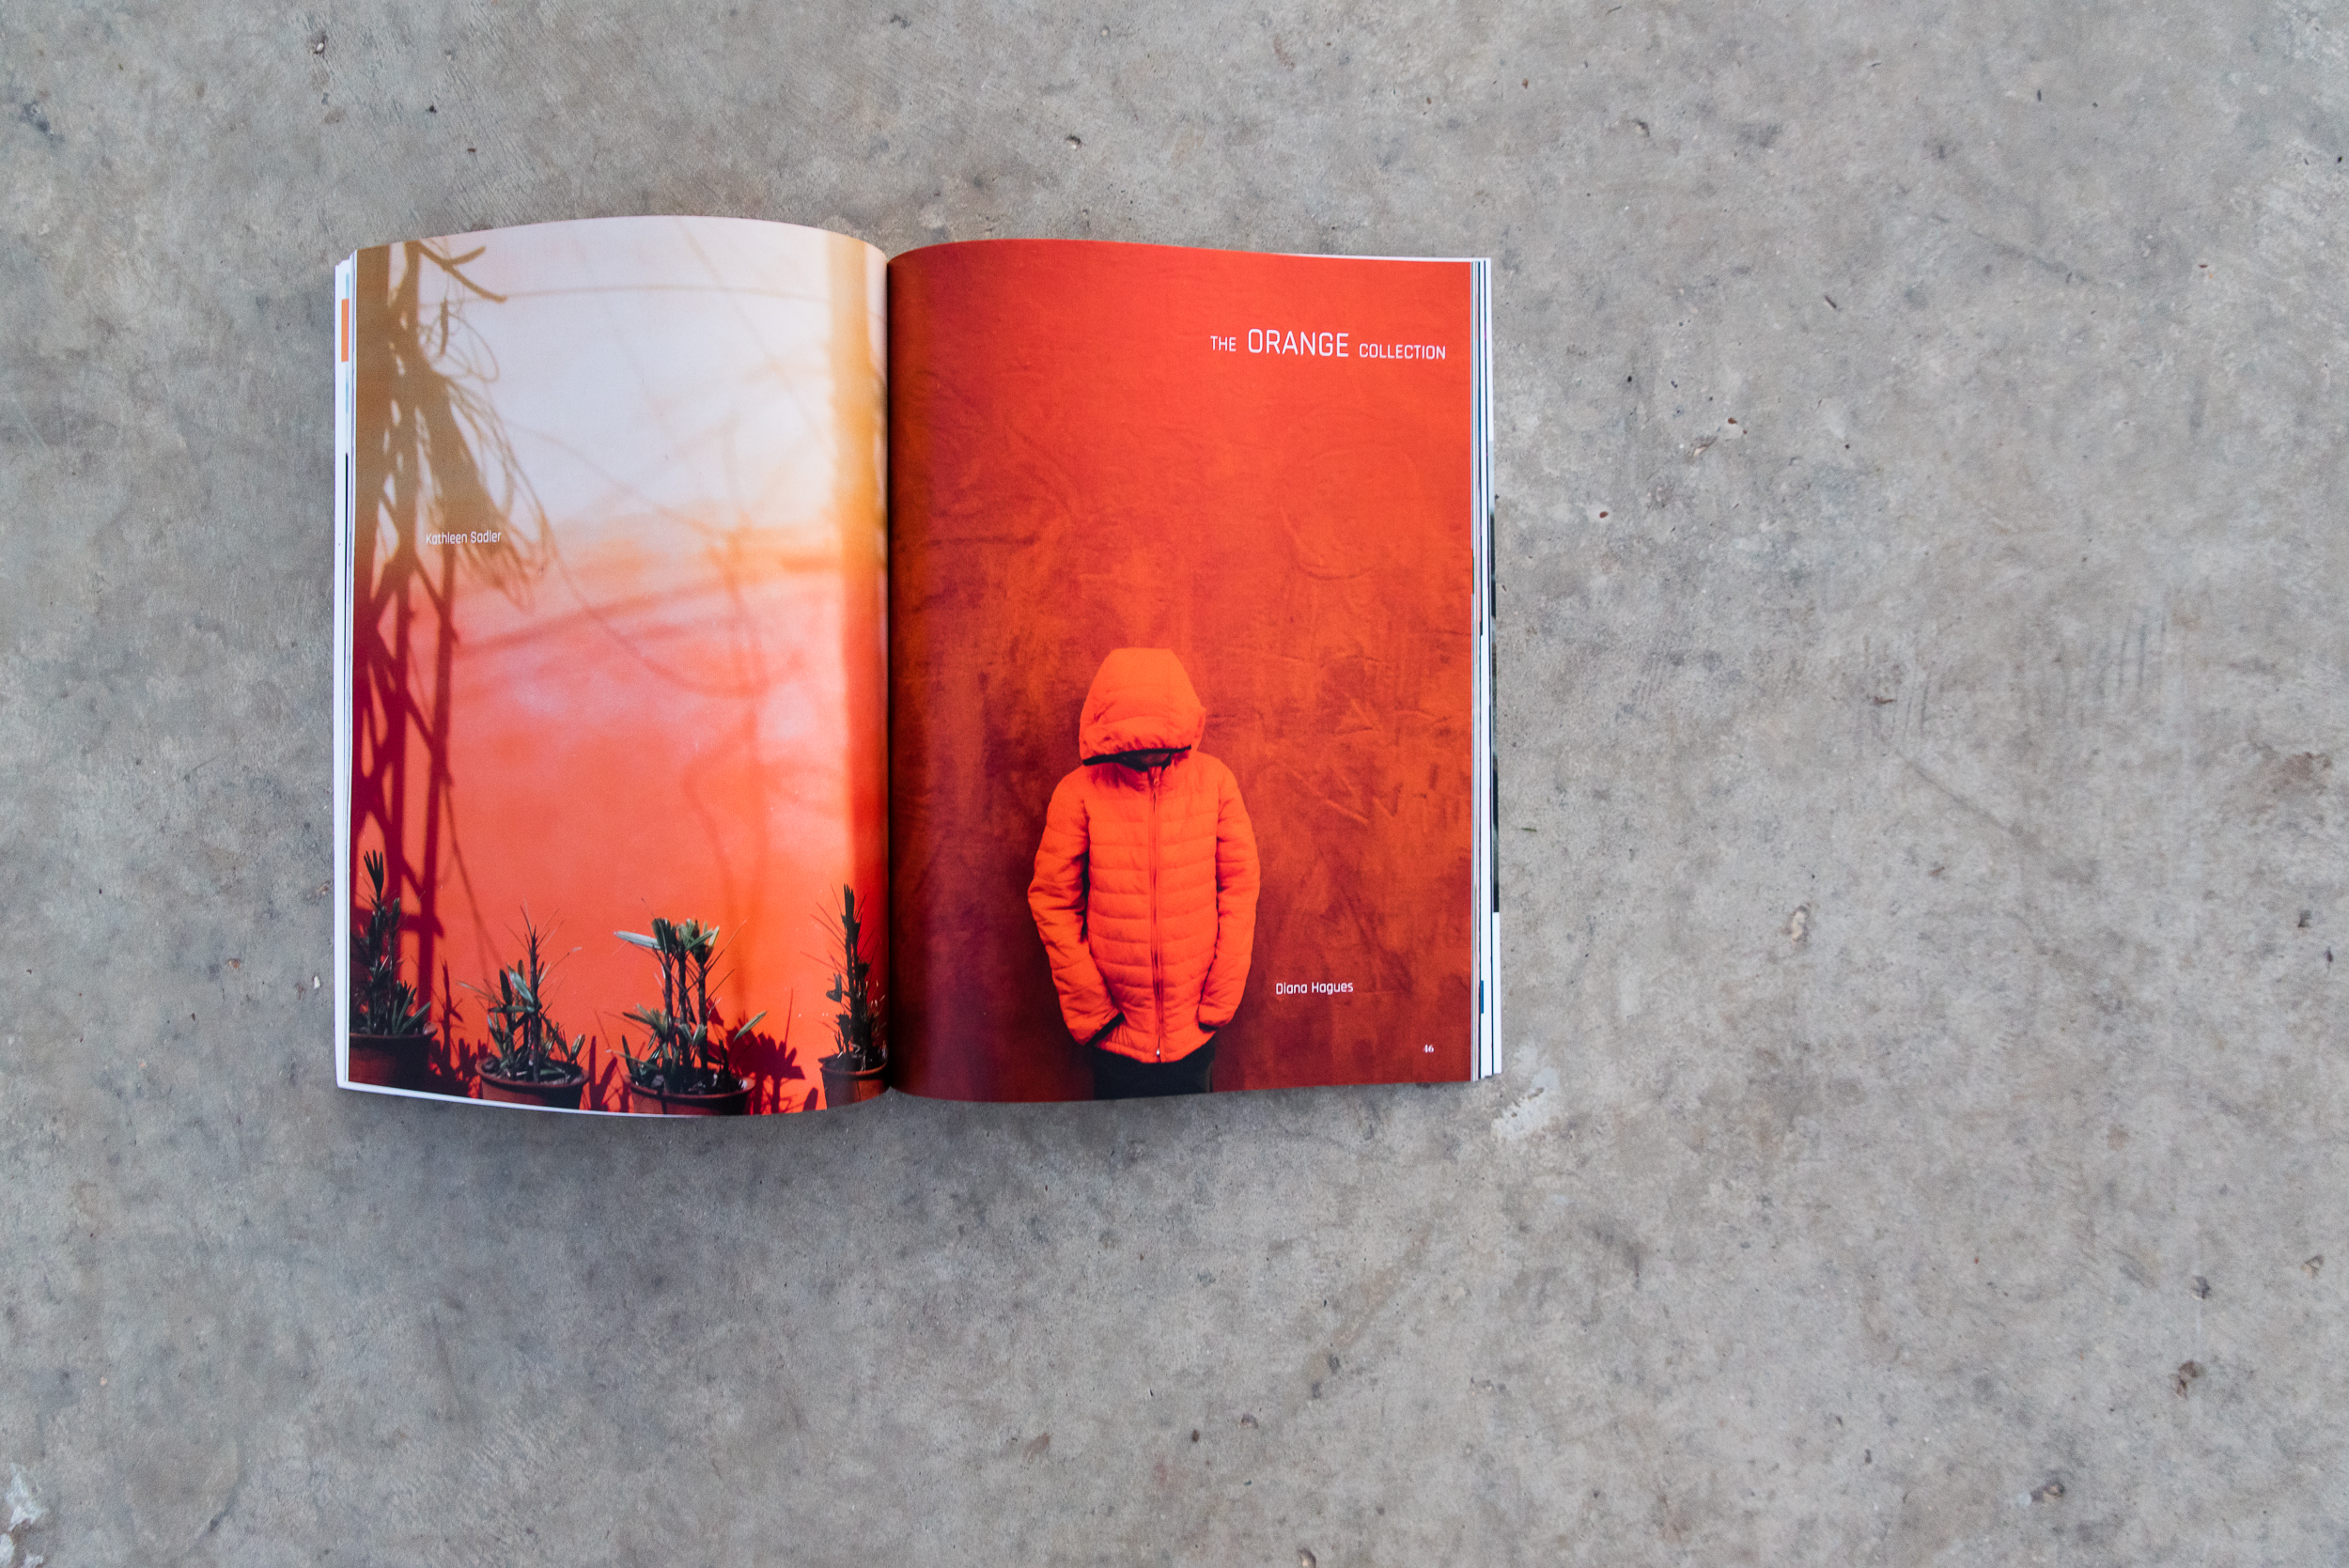 Full page spread of Diana Hagues's Boy in the Orange jacket phot